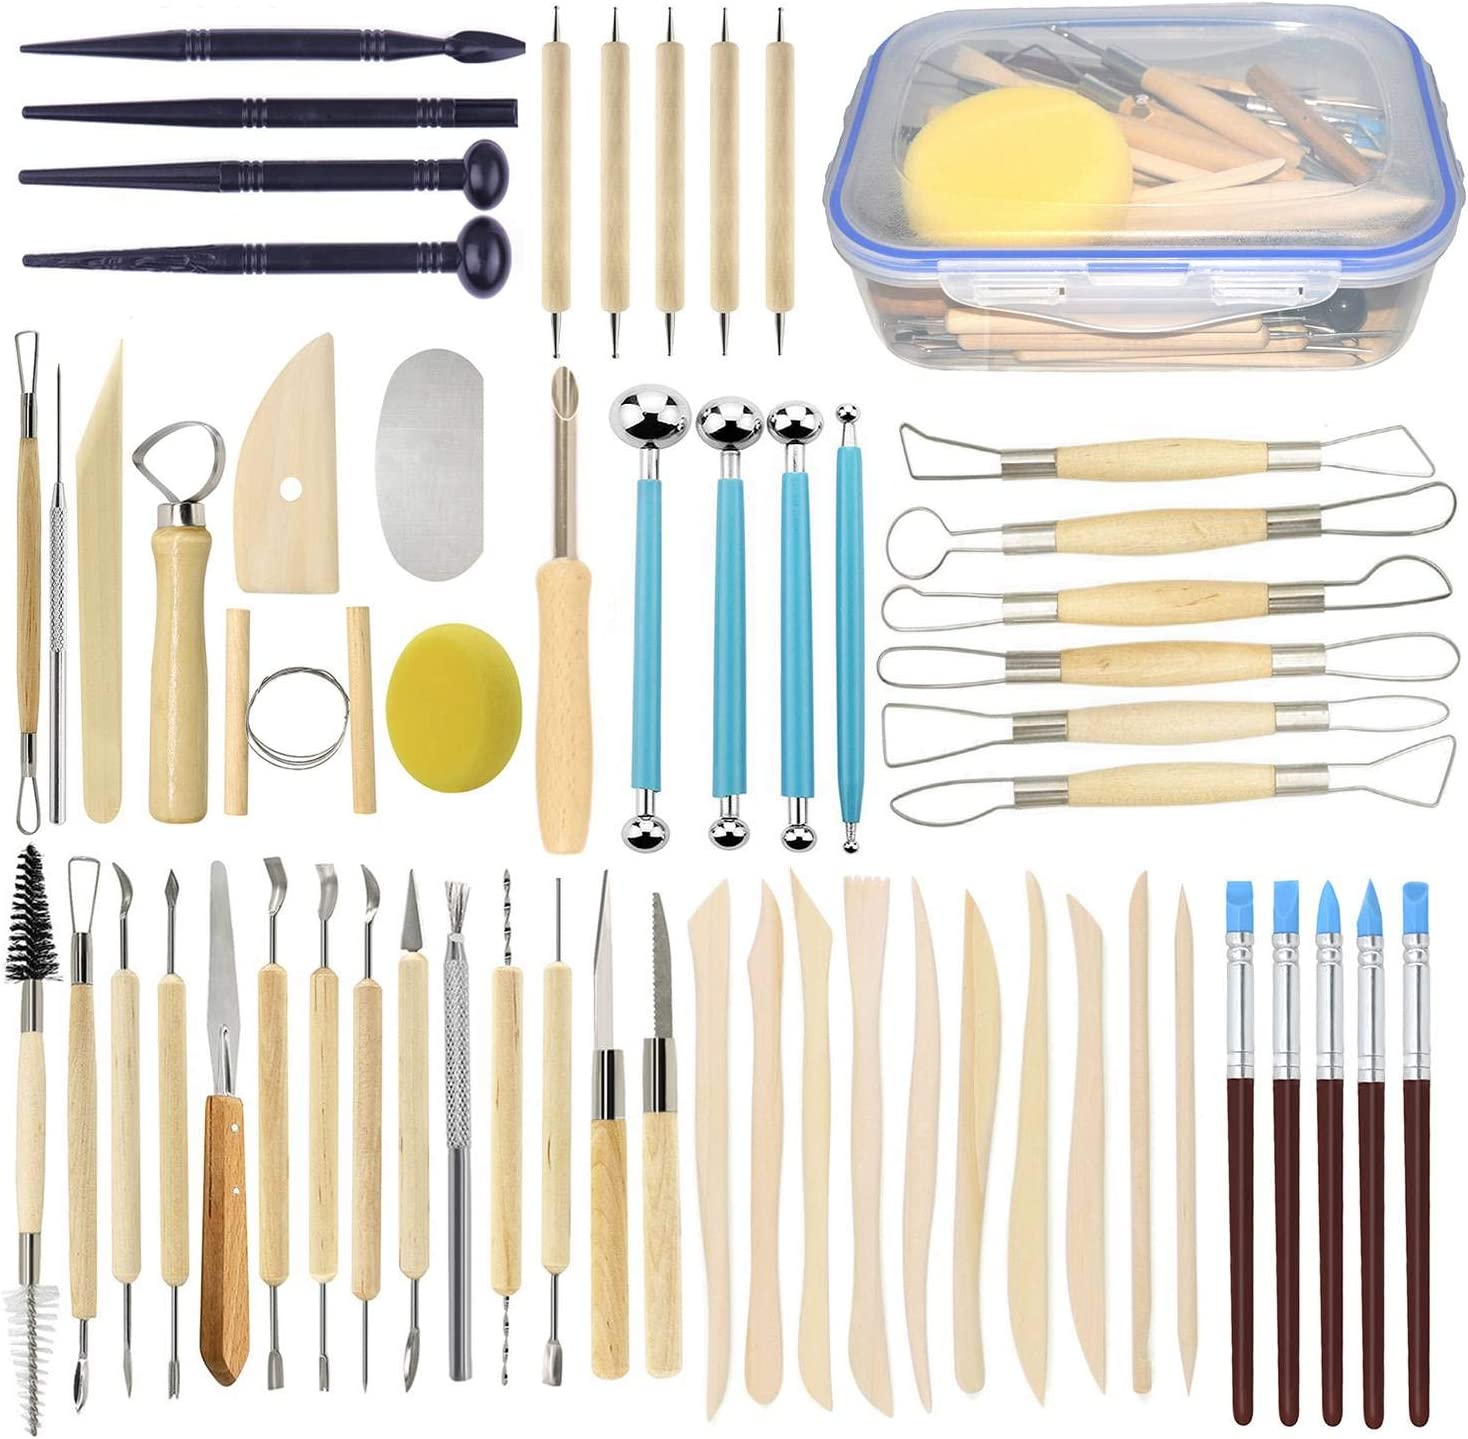 LOYEH 6PCS Pottery Ceramics Tools Polymer Clay Modeling Tool Durable Sculpting Shapers Wooden Handle Double-Headed for Sculpture For Beginners Carving Sculpt Set